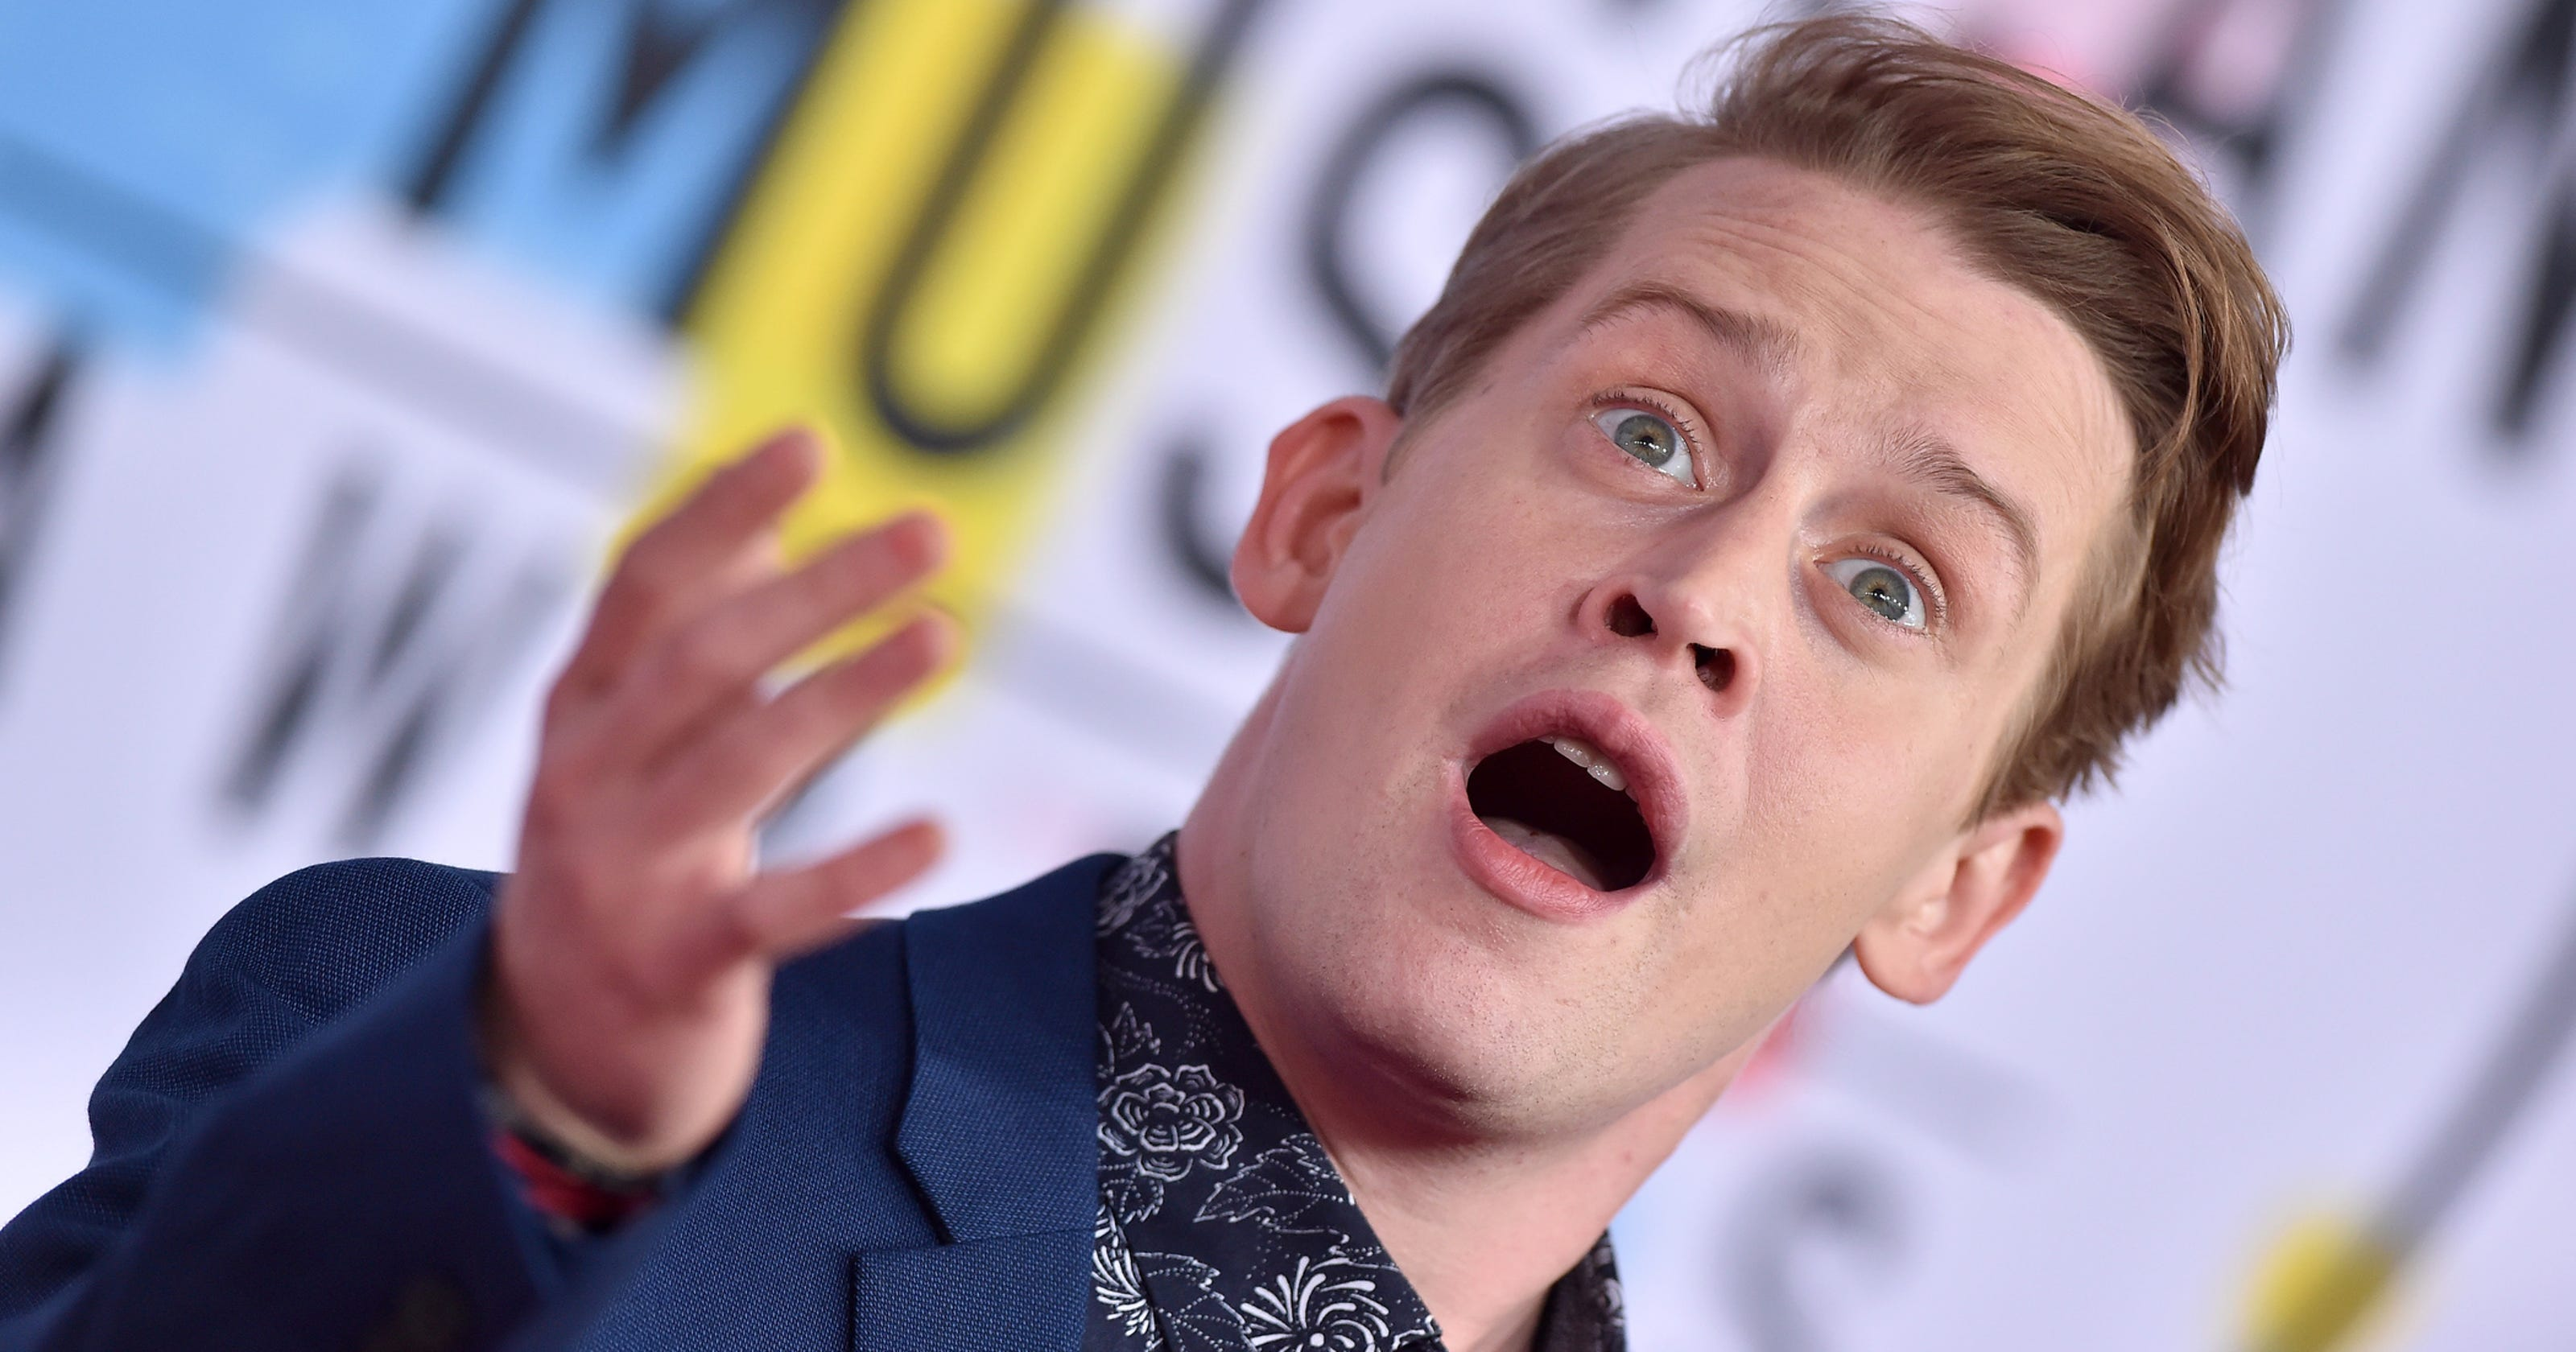 Macaulay Culkin Is Home Alone Again In Google Assistant Holiday Ad